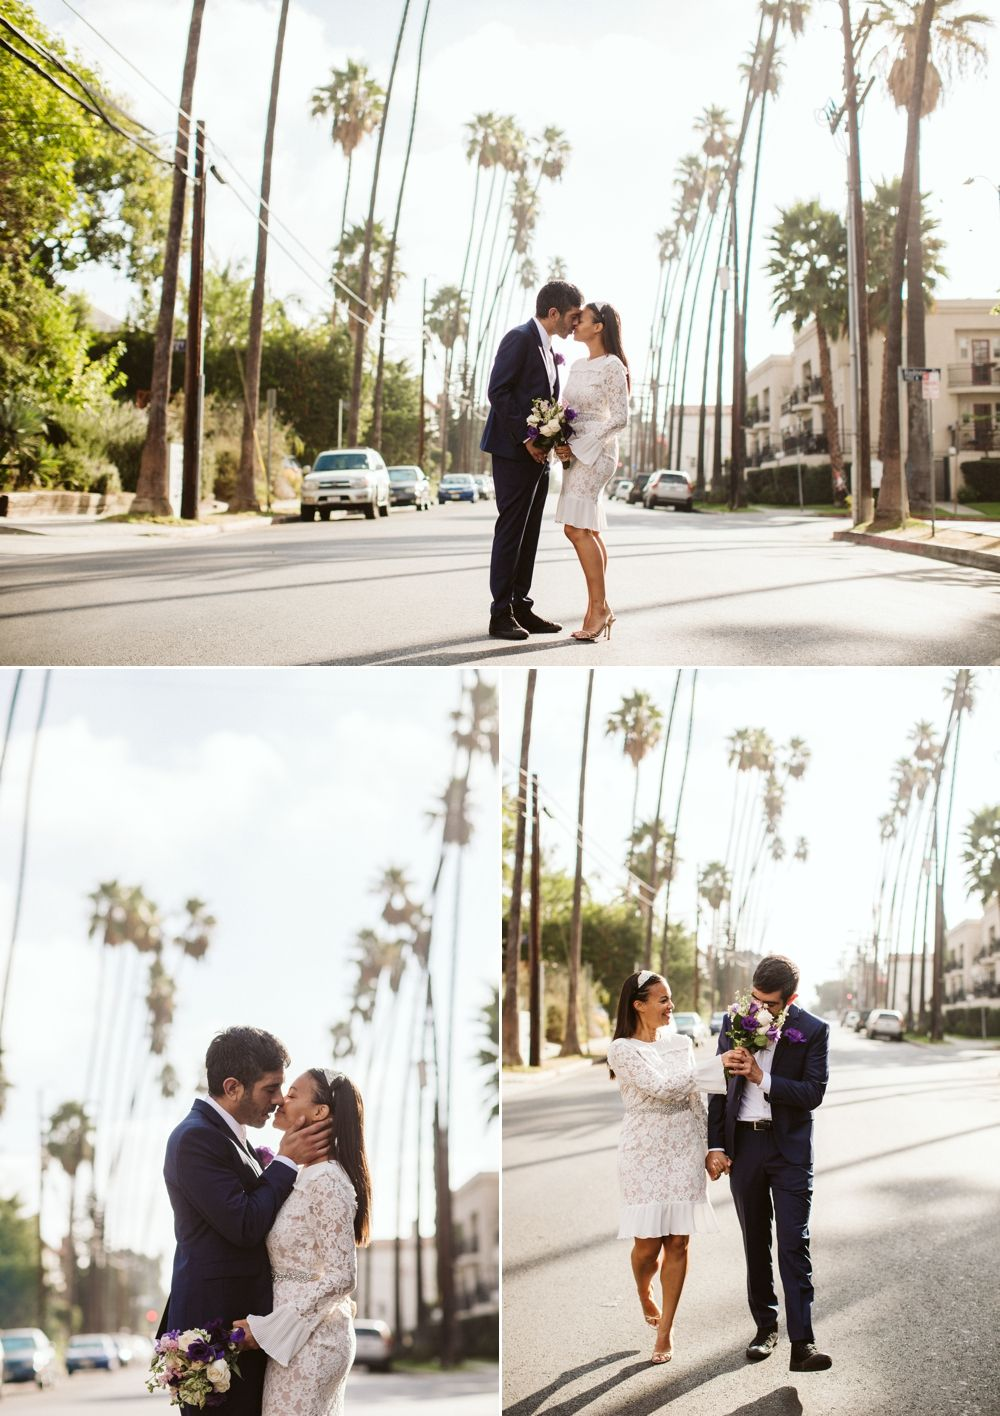 Kathy Freddy Elopement Griffith Observatory Wedding Elopement Photography Los Angeles Ca Griffith Observatory Wedding Elopement Photography Griffith Observatory